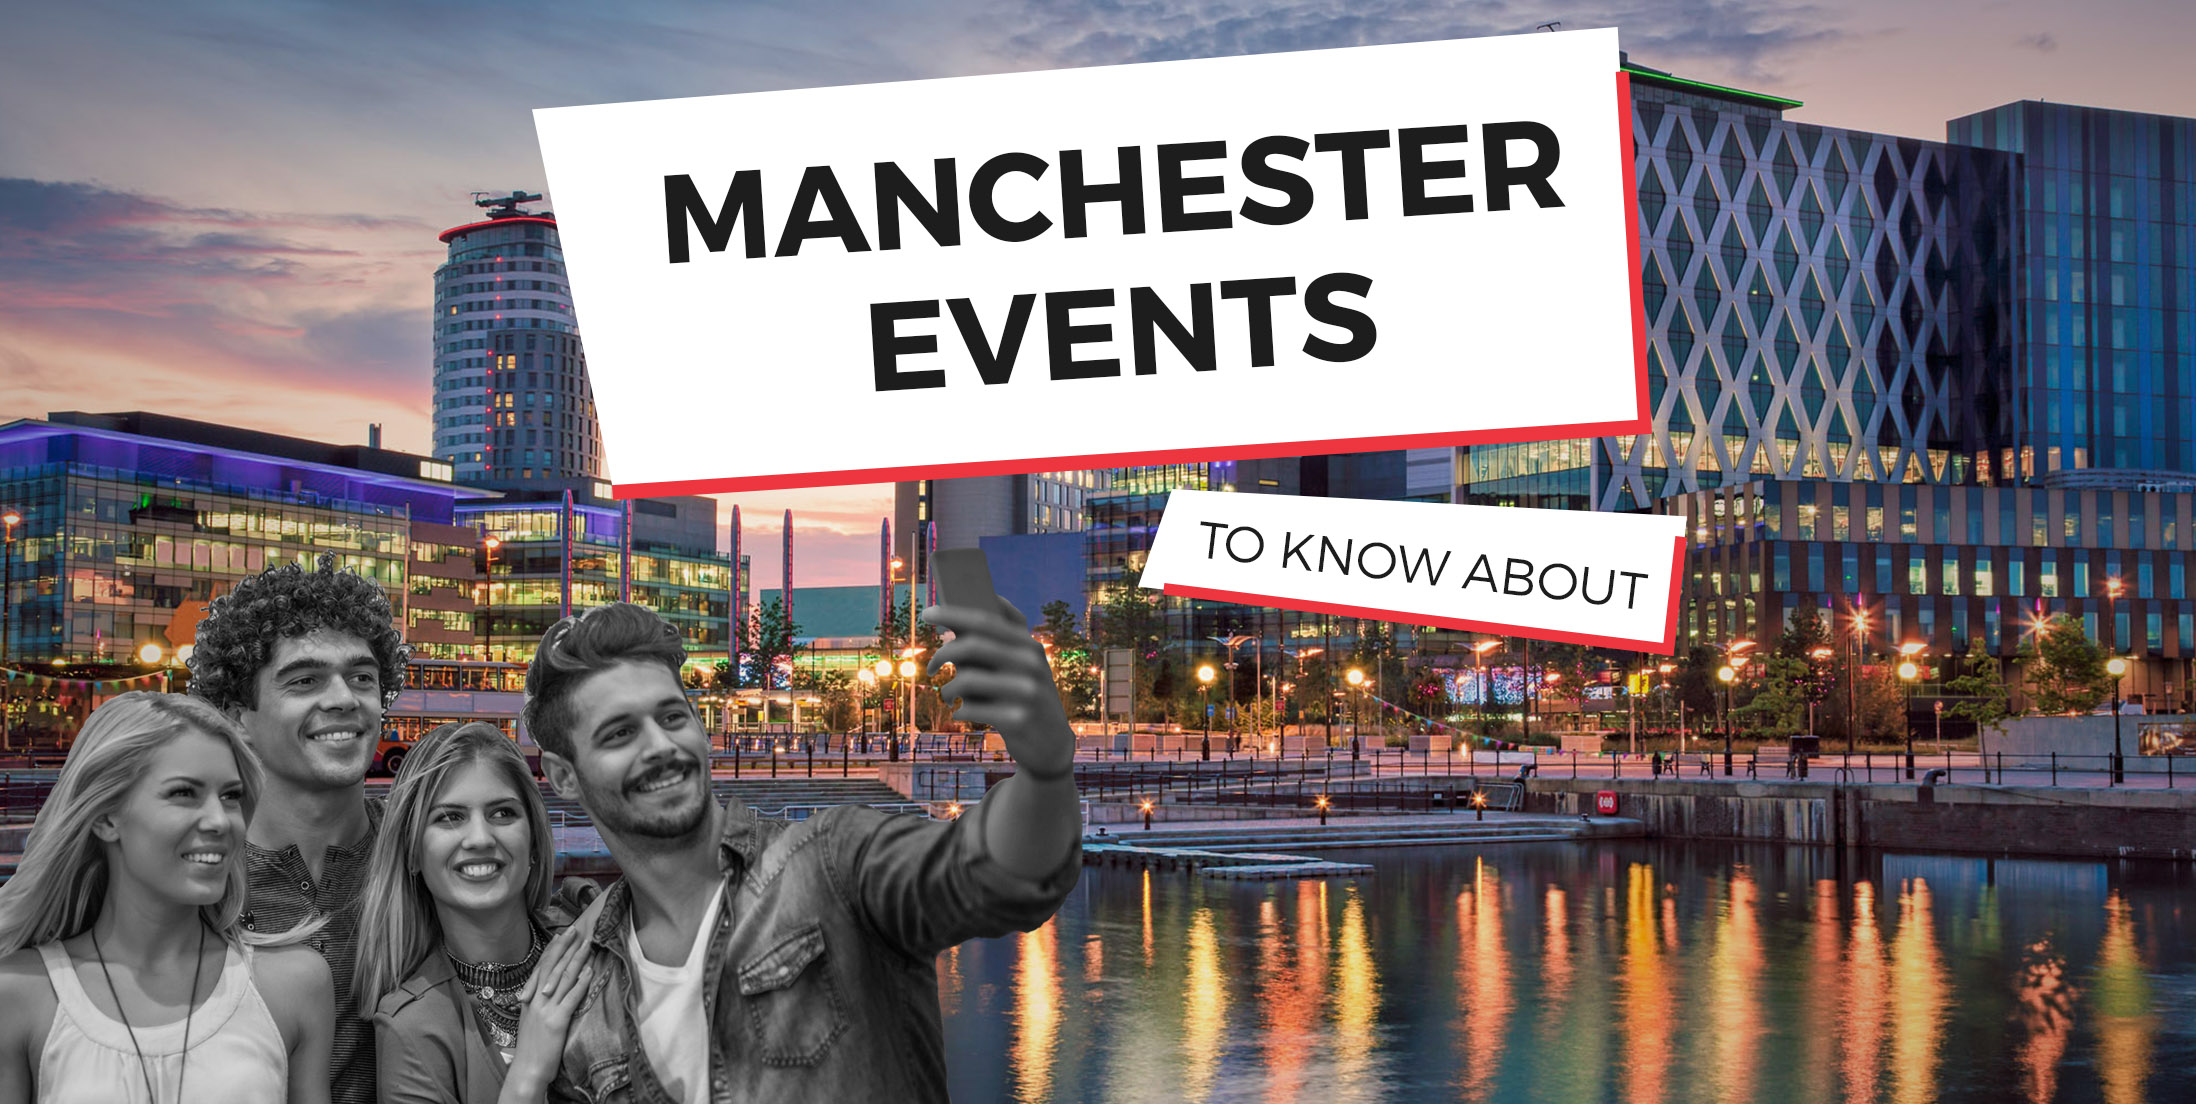 Manchester Events to Know About